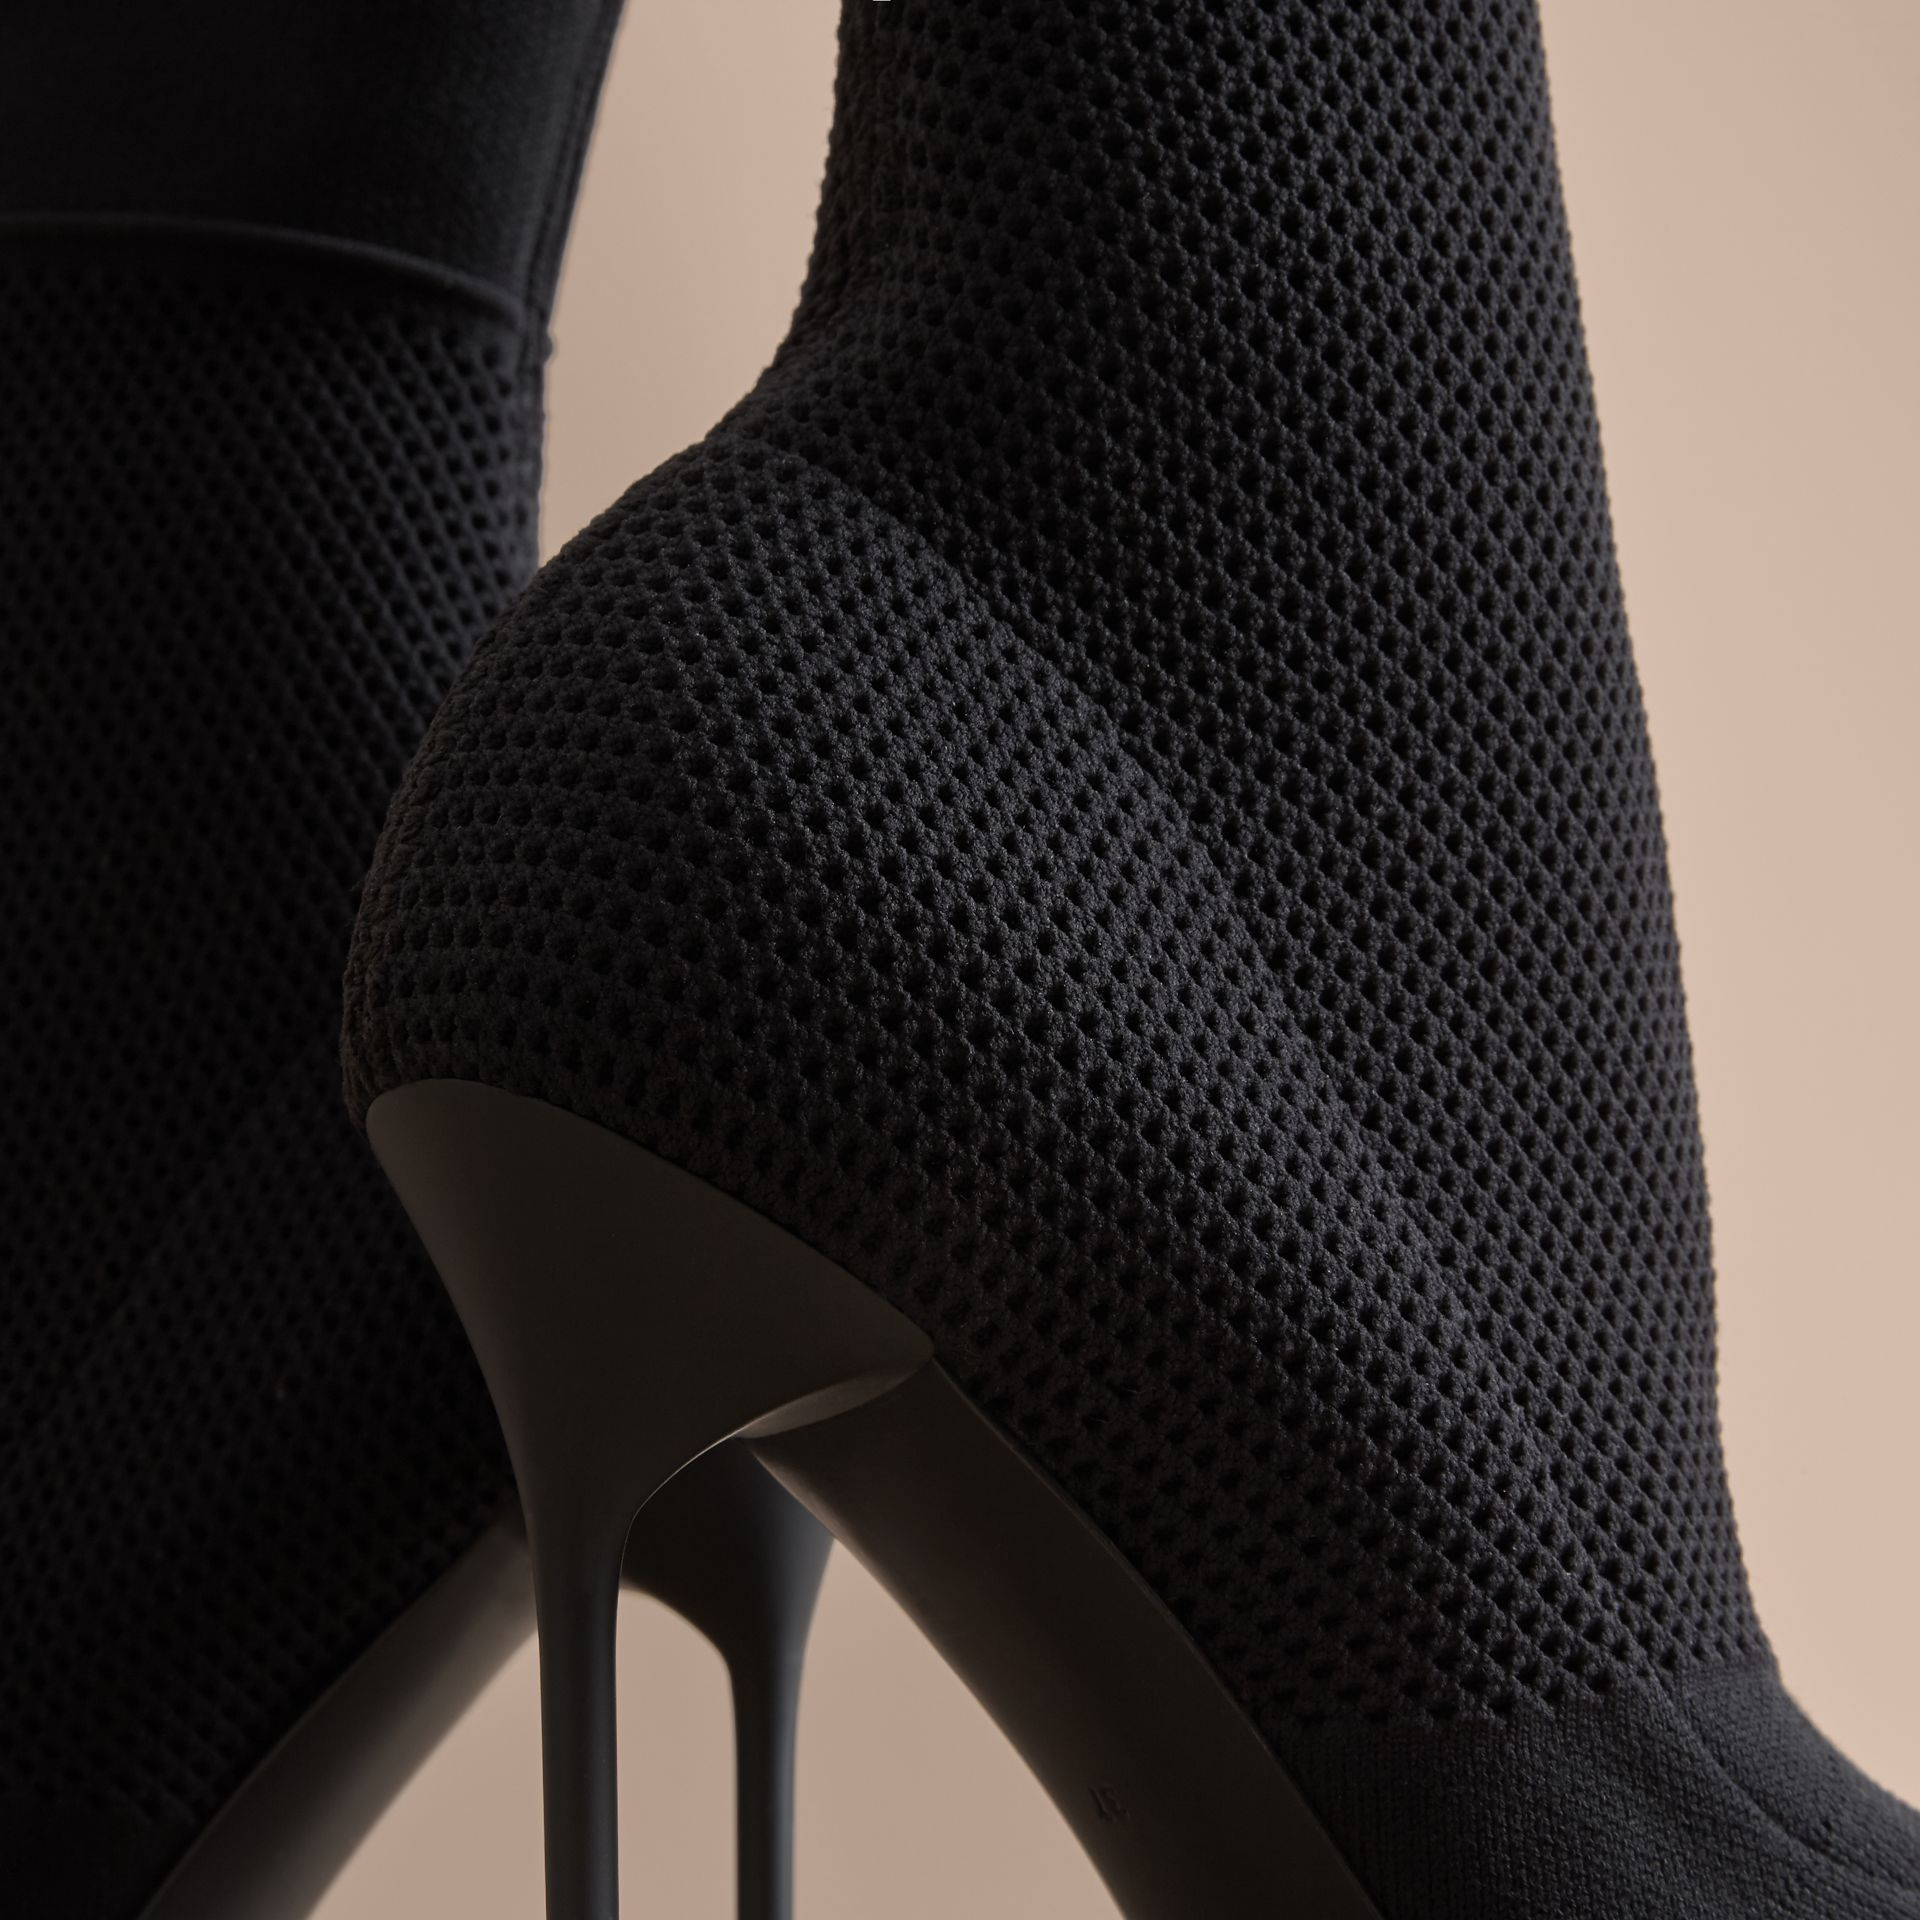 Mid-calf Knitted Mesh Boots in Black - Women | Burberry - gallery image 5